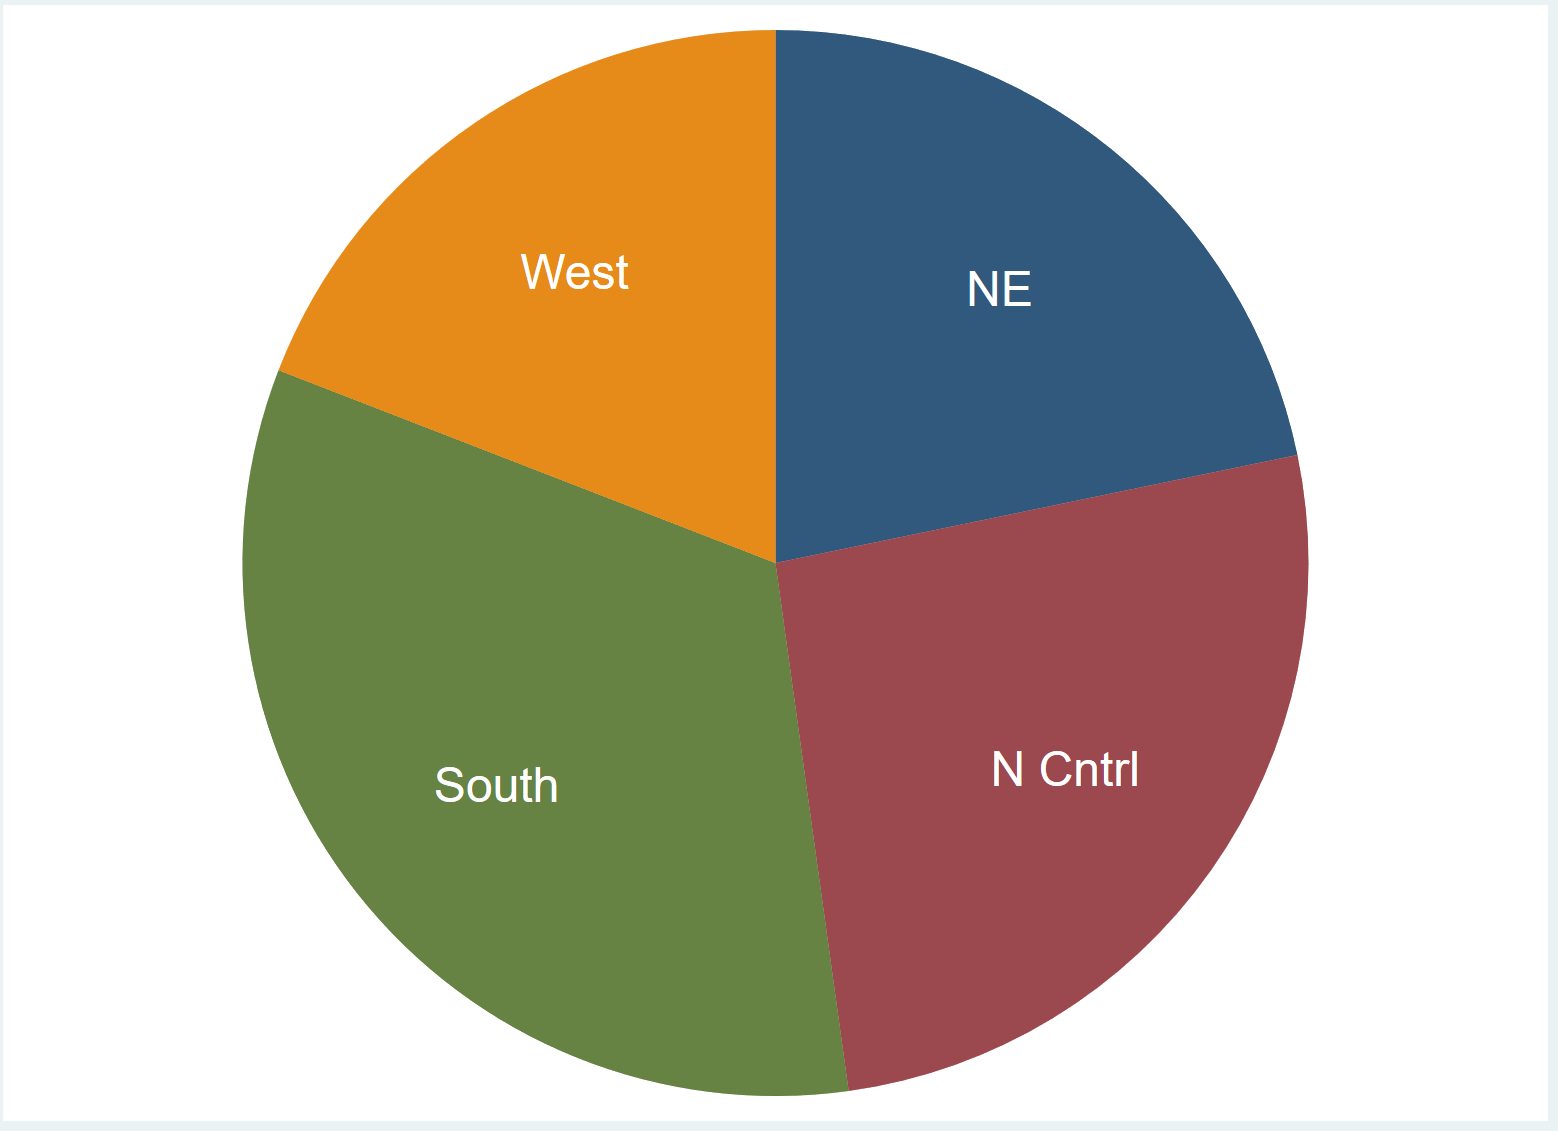 Pie chart with no legend in Stata